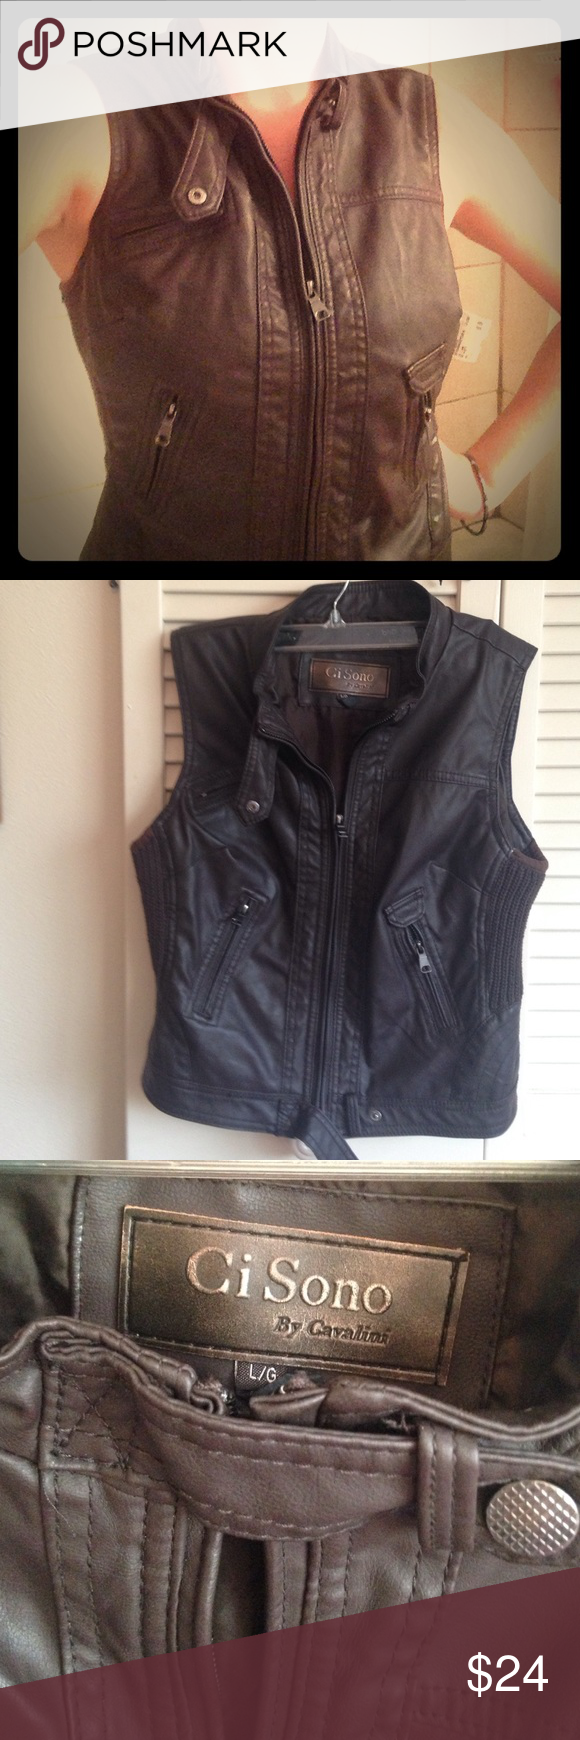 Awesome brown faux leather vest Comfortable, durable, polyvinyl. Deep brown with zipper pockets Ci sono by cavalini Jackets & Coats Vests